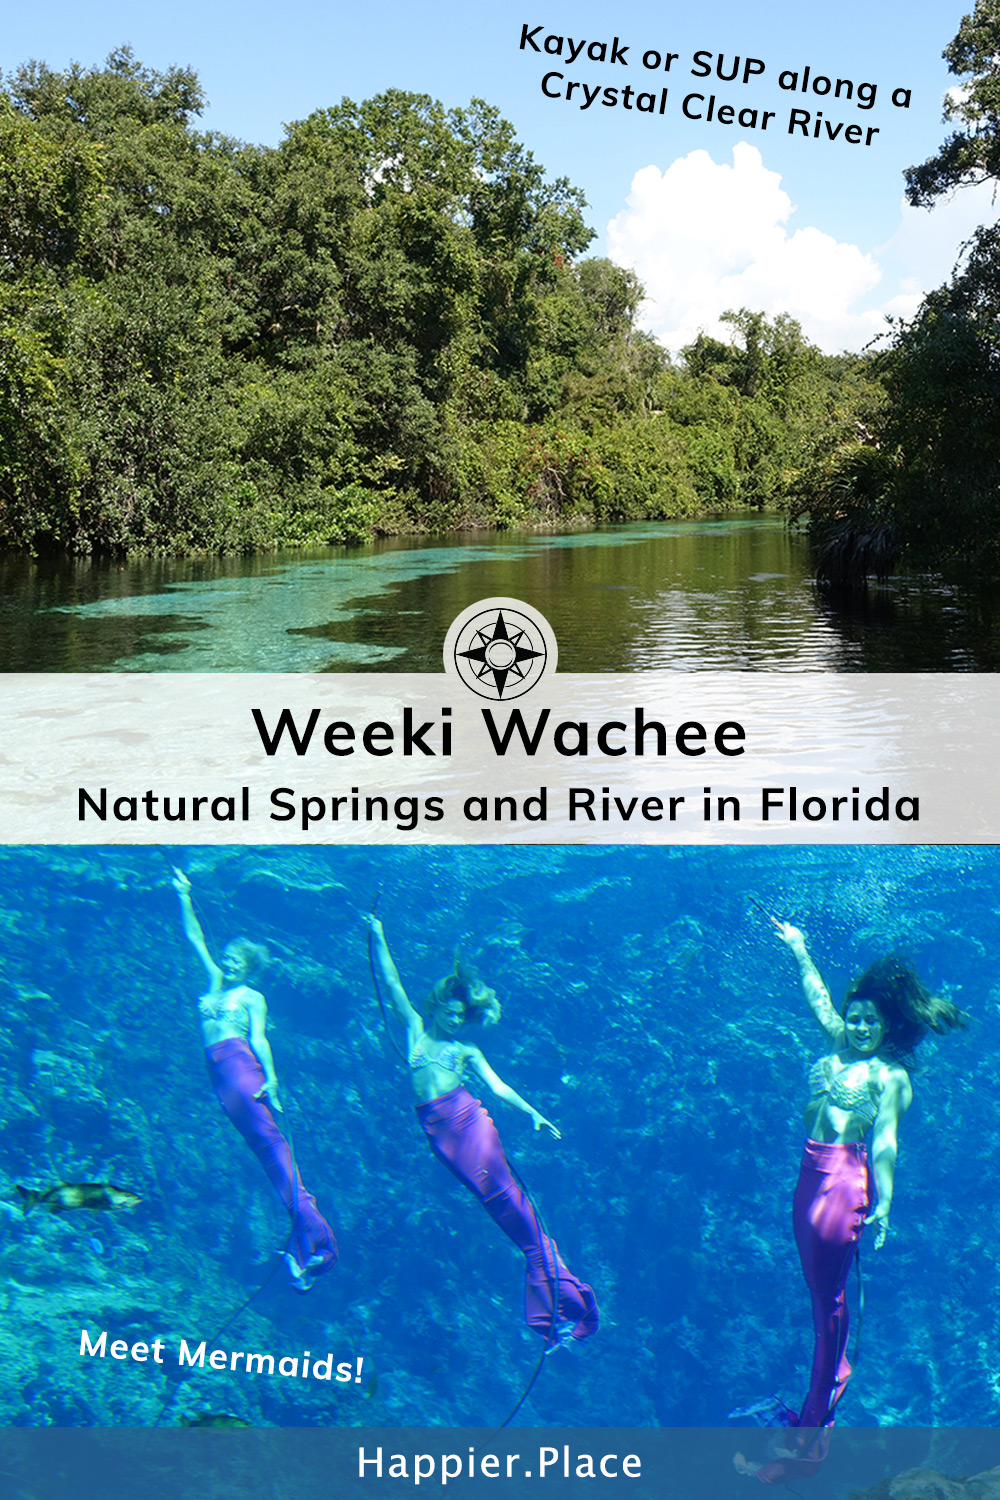 Weeki Wachee Springs and River in Florida - Meet Mermaids, swim in a natural spring and paddle the crystal clear river.  #HappierPlace #Florida #mermaid #river #SUP #kayak #outdoors #travelguide #outdoorguide #fishing